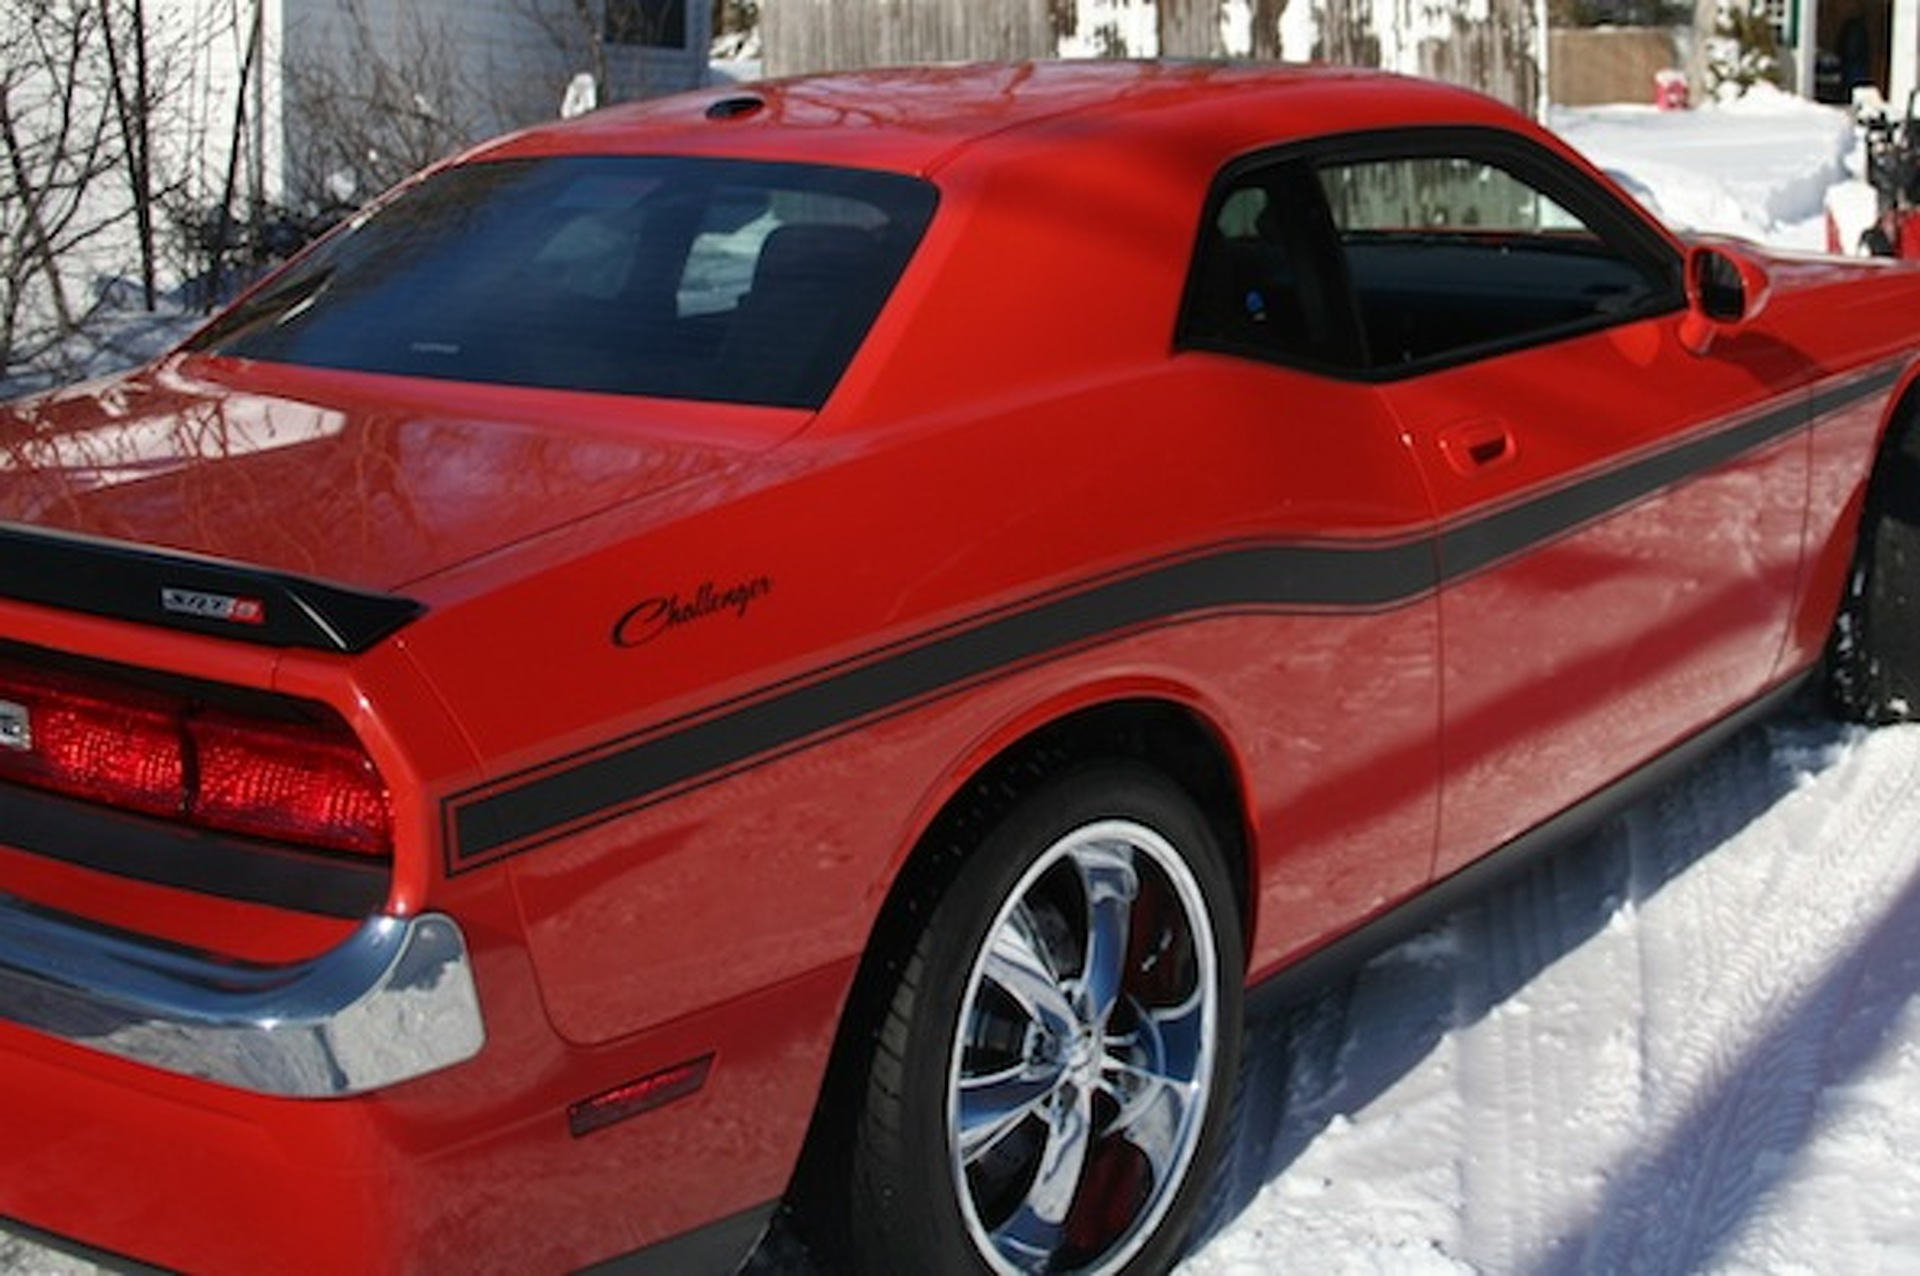 Your Ride: Dodge Challenger SRT8